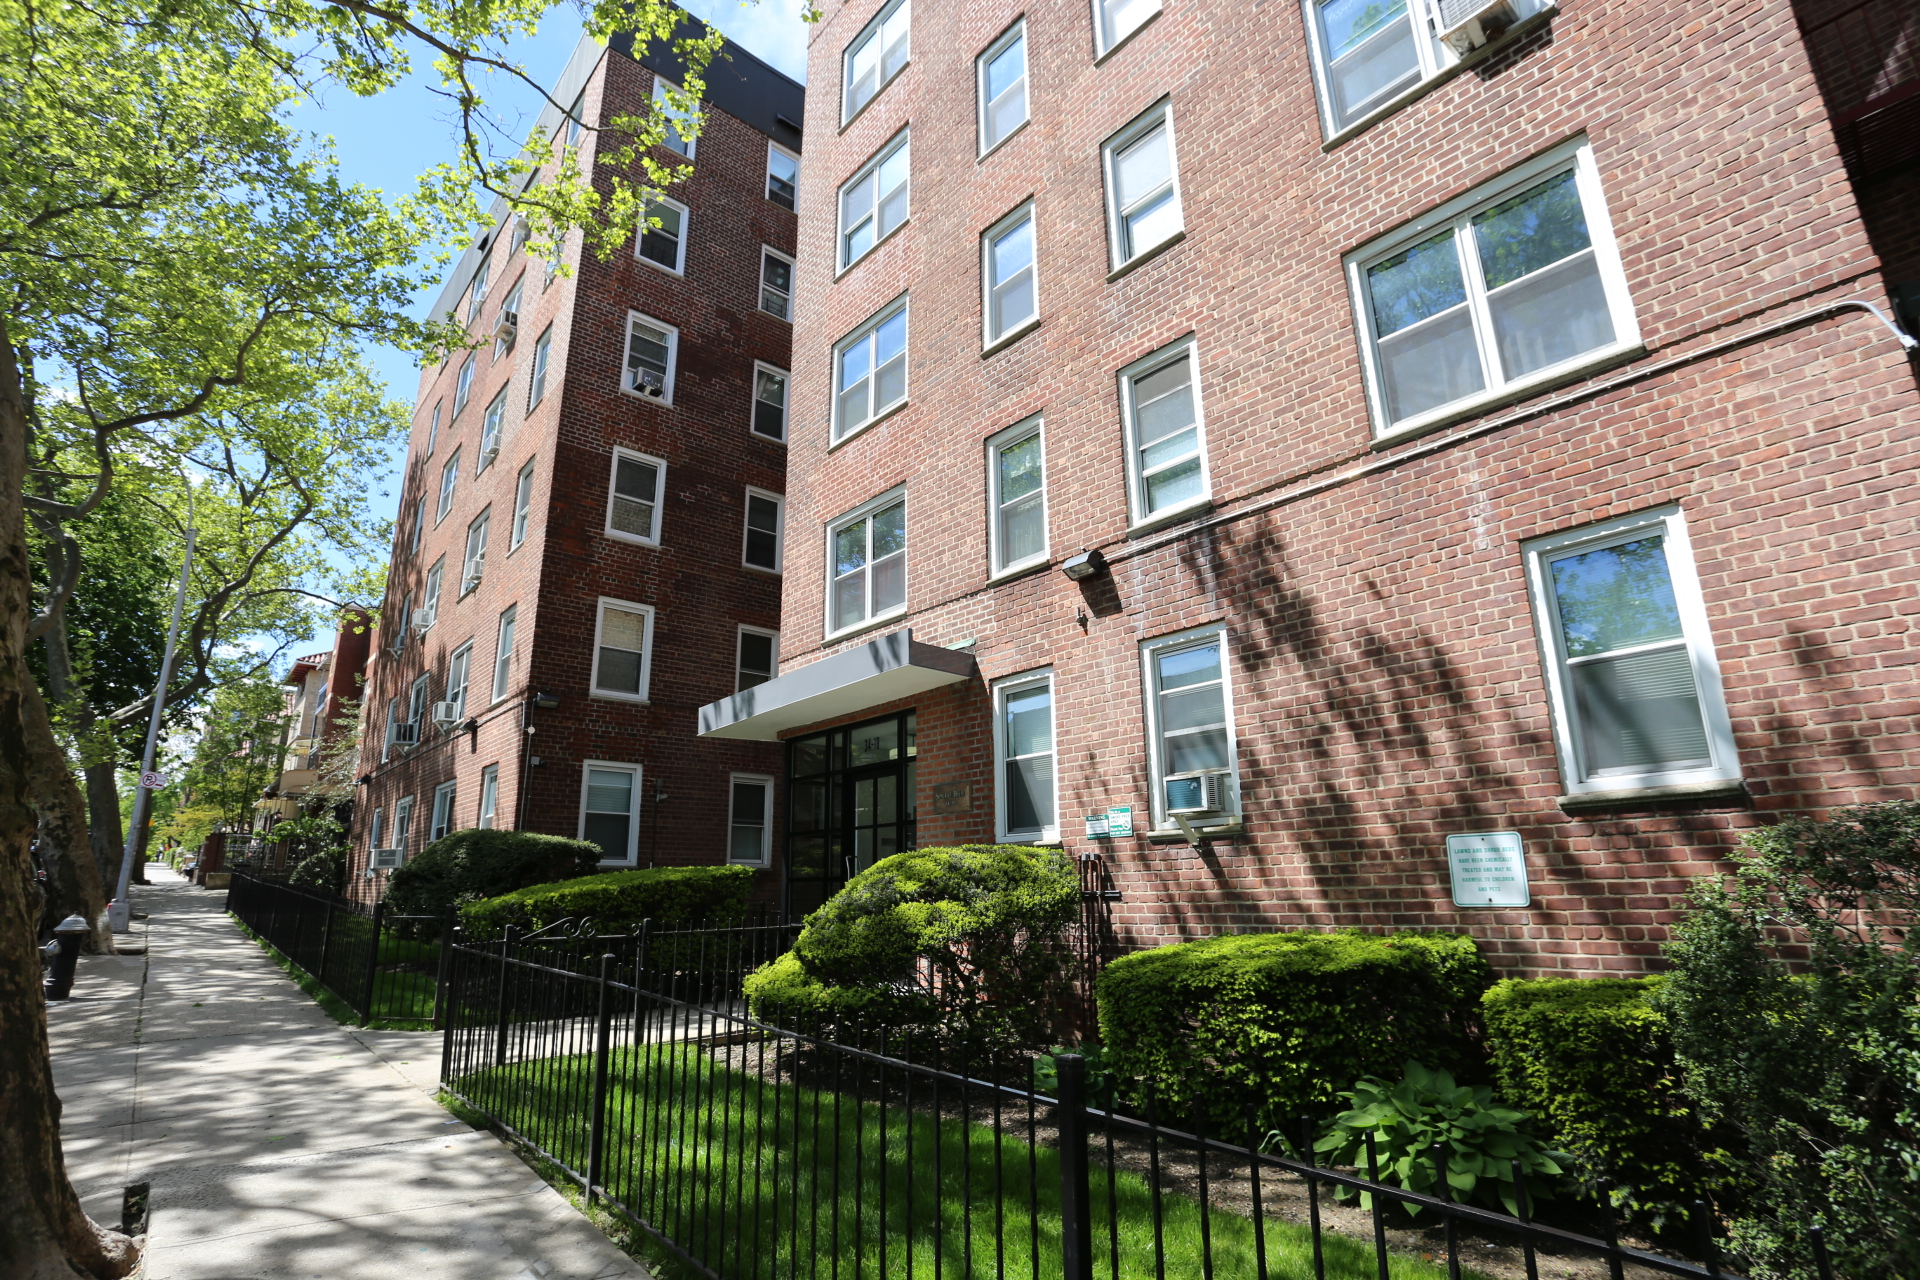 3 Bedroom House For Rent Queens Ny 28 Images For Rent